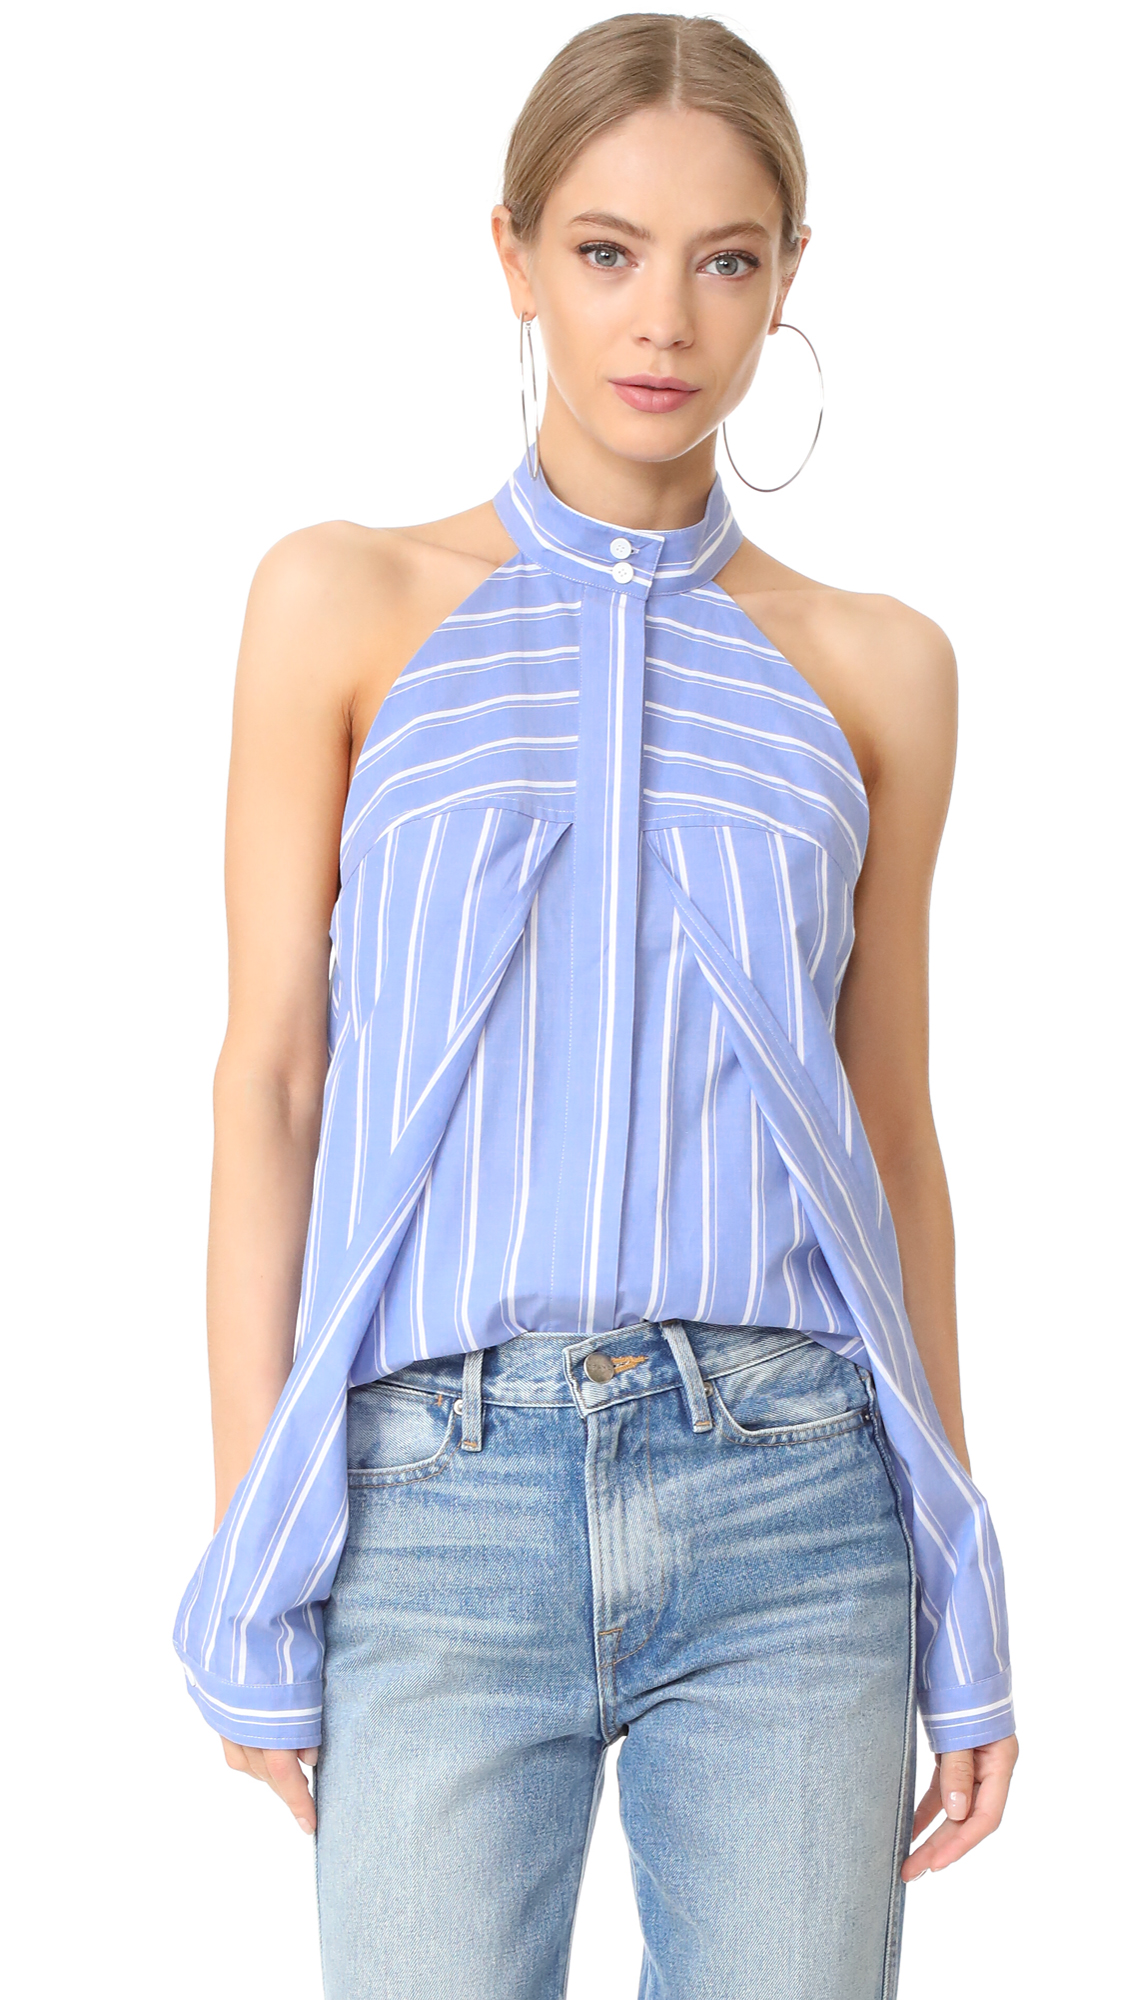 Dion Lee Sleeve Release Shirt - Blue Stripe